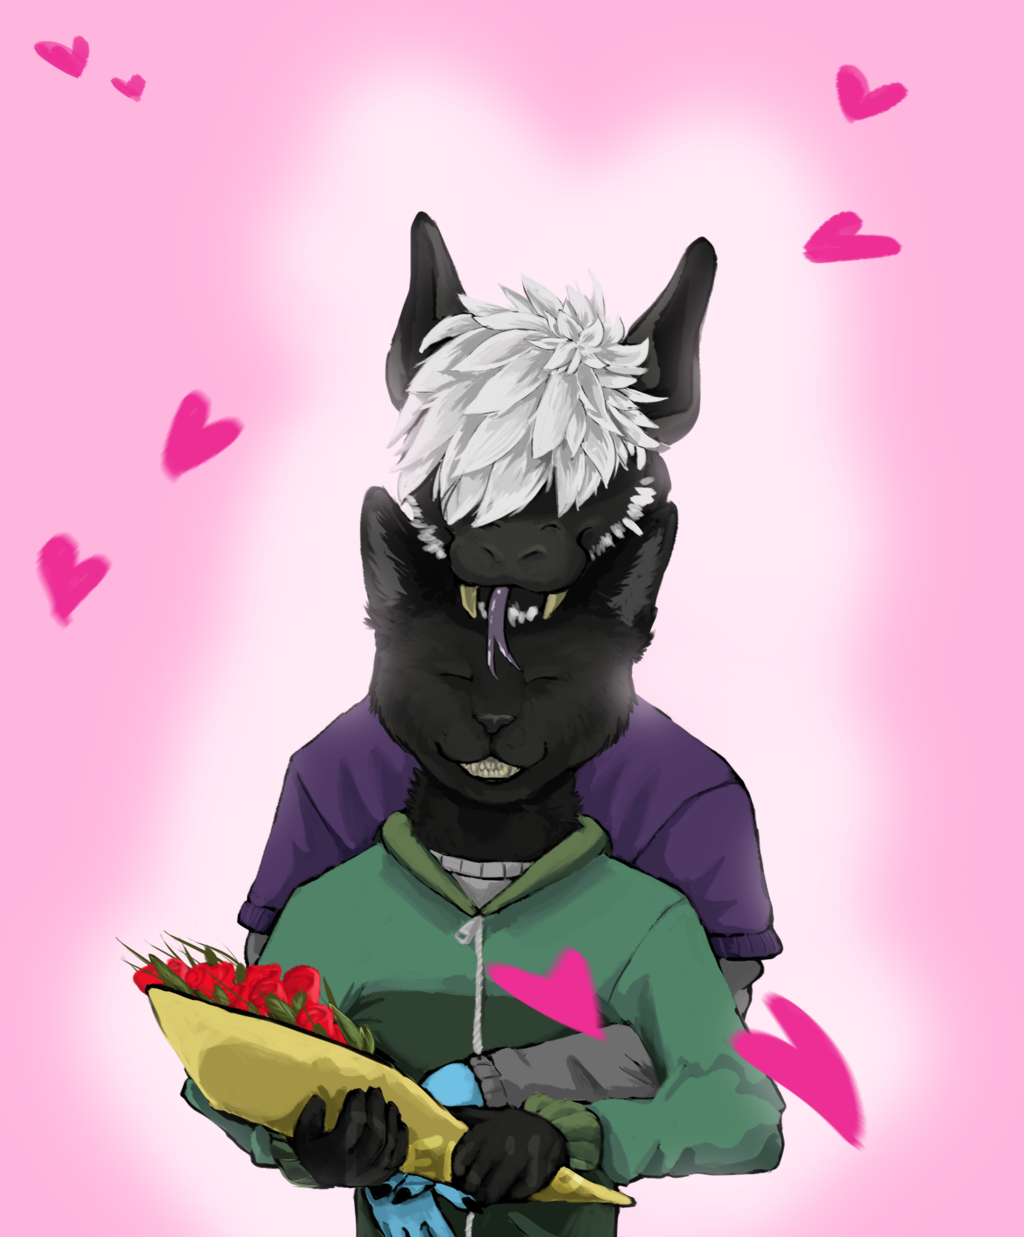 Most recent image: (Belated) Valentine's Day 2016